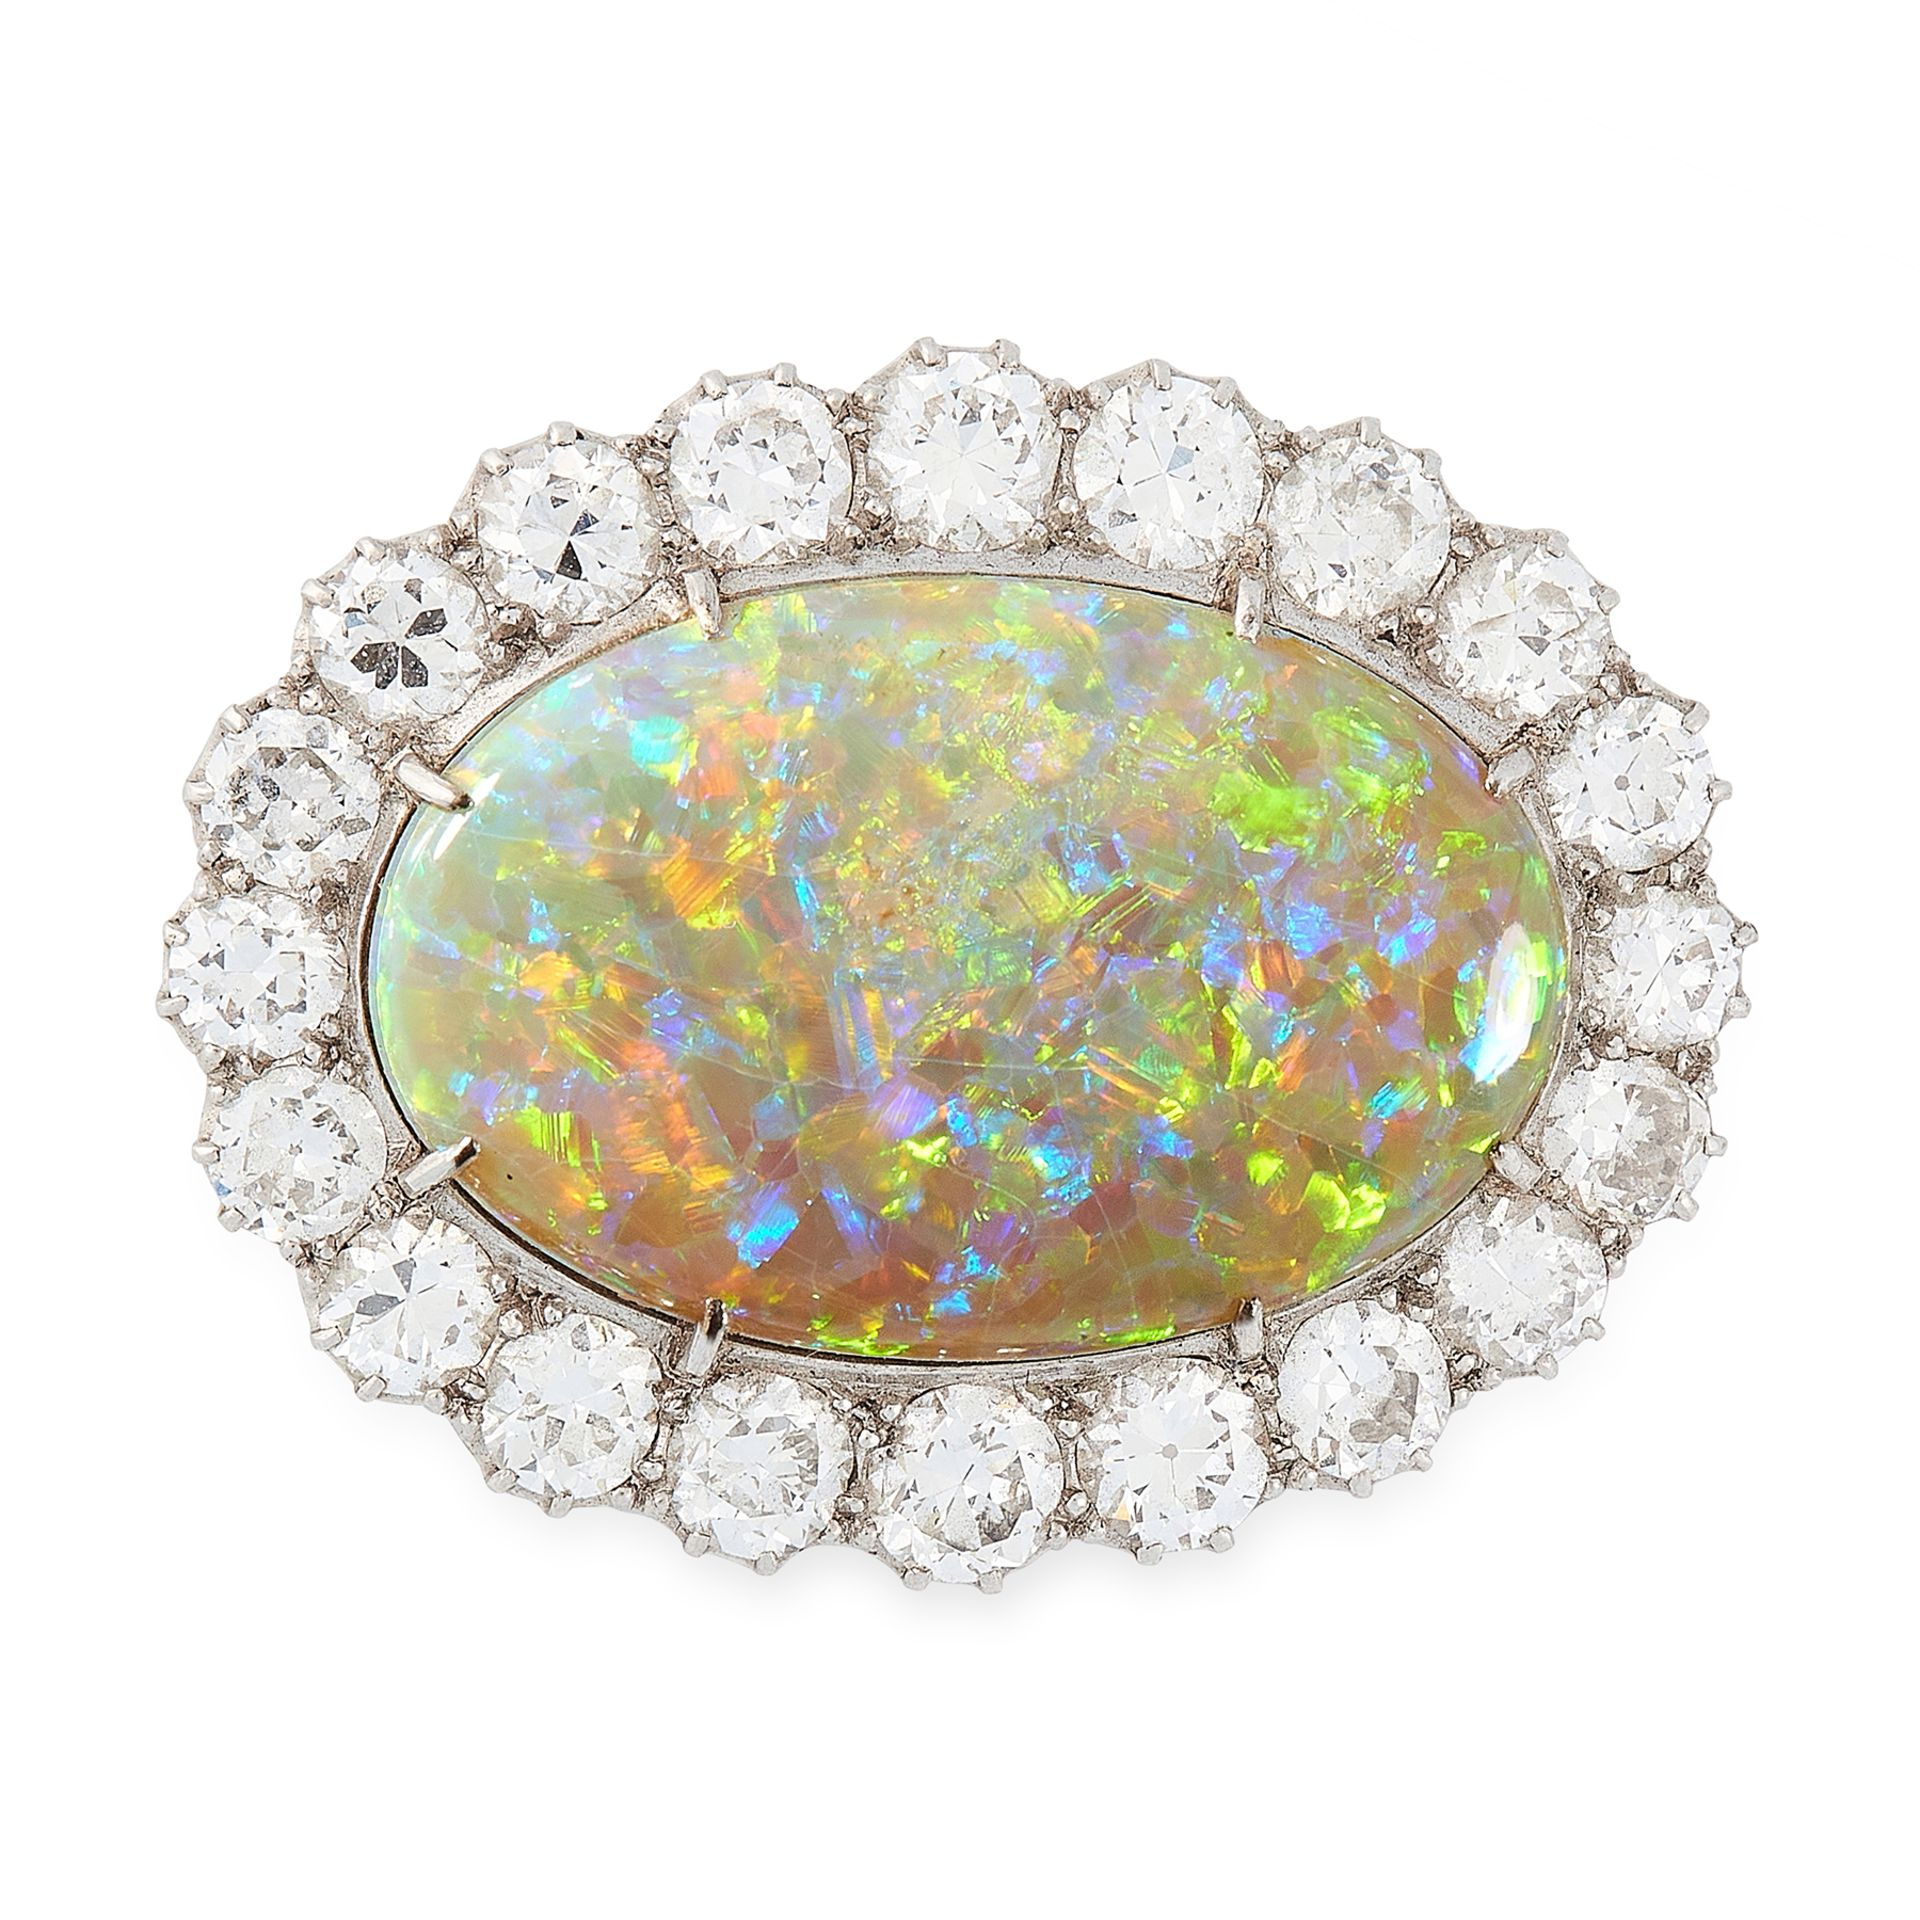 Los 2 - AN OPAL AND DIAMOND BROOCH set with a large oval opal cabochon of 16.56 carats within a border of